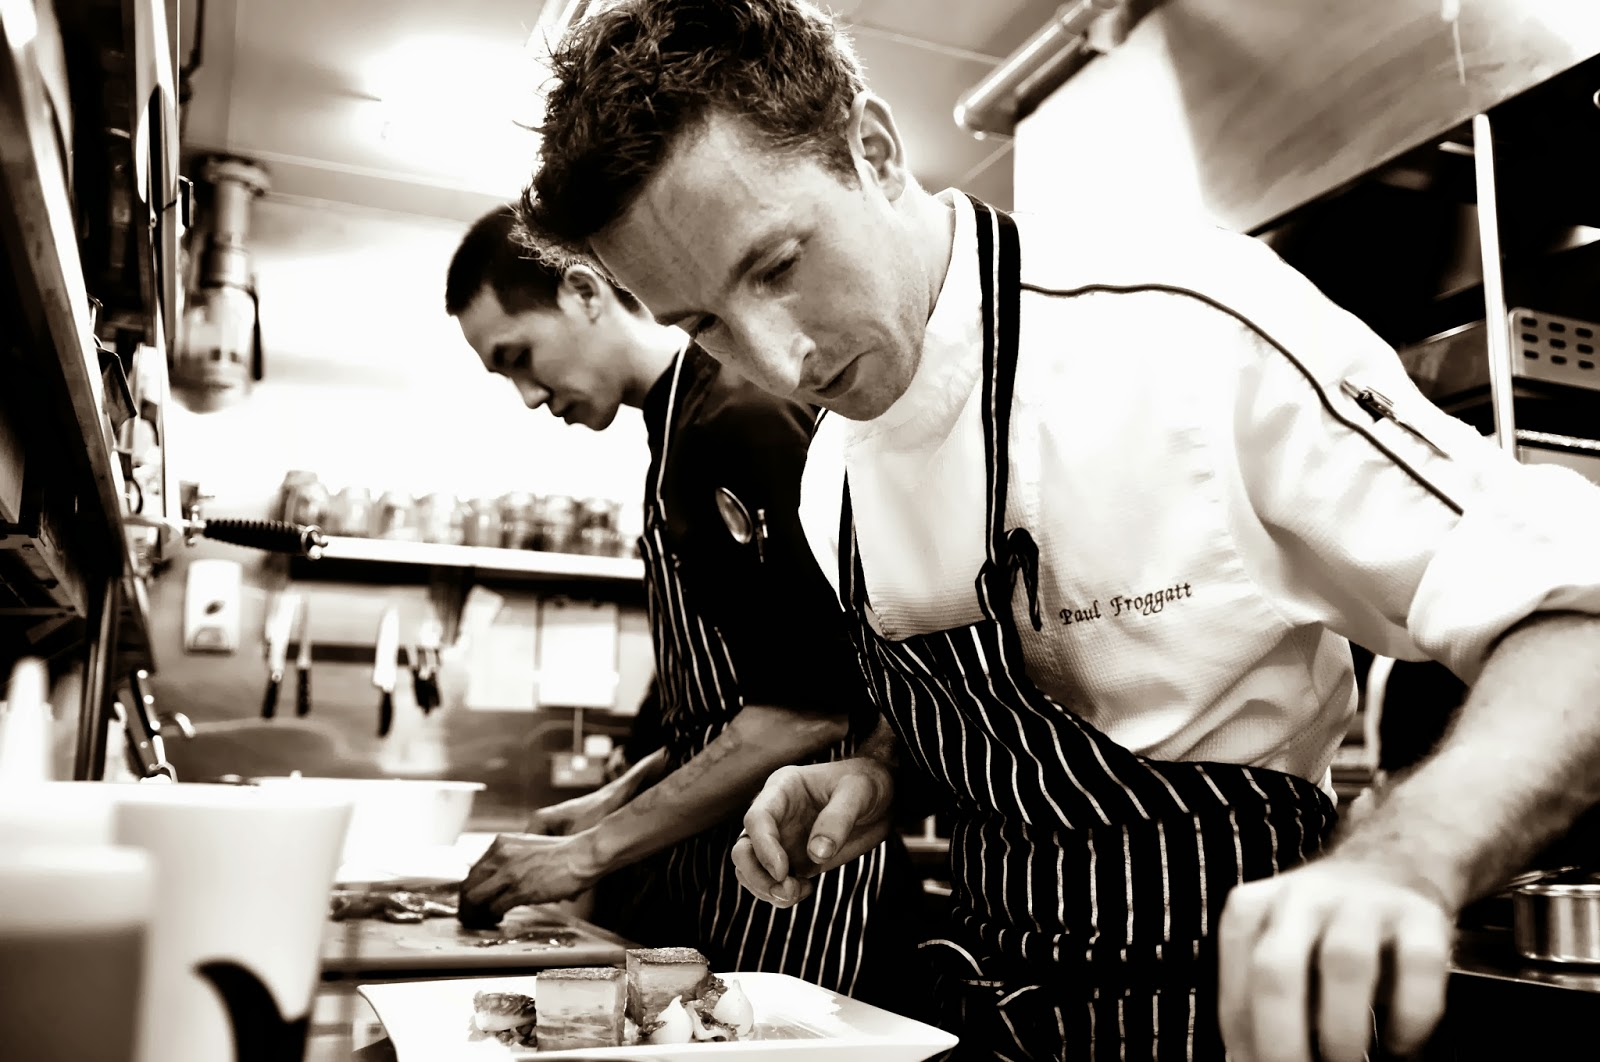 Chef+Paul+Froggatt+B+%25282%2529.jpg